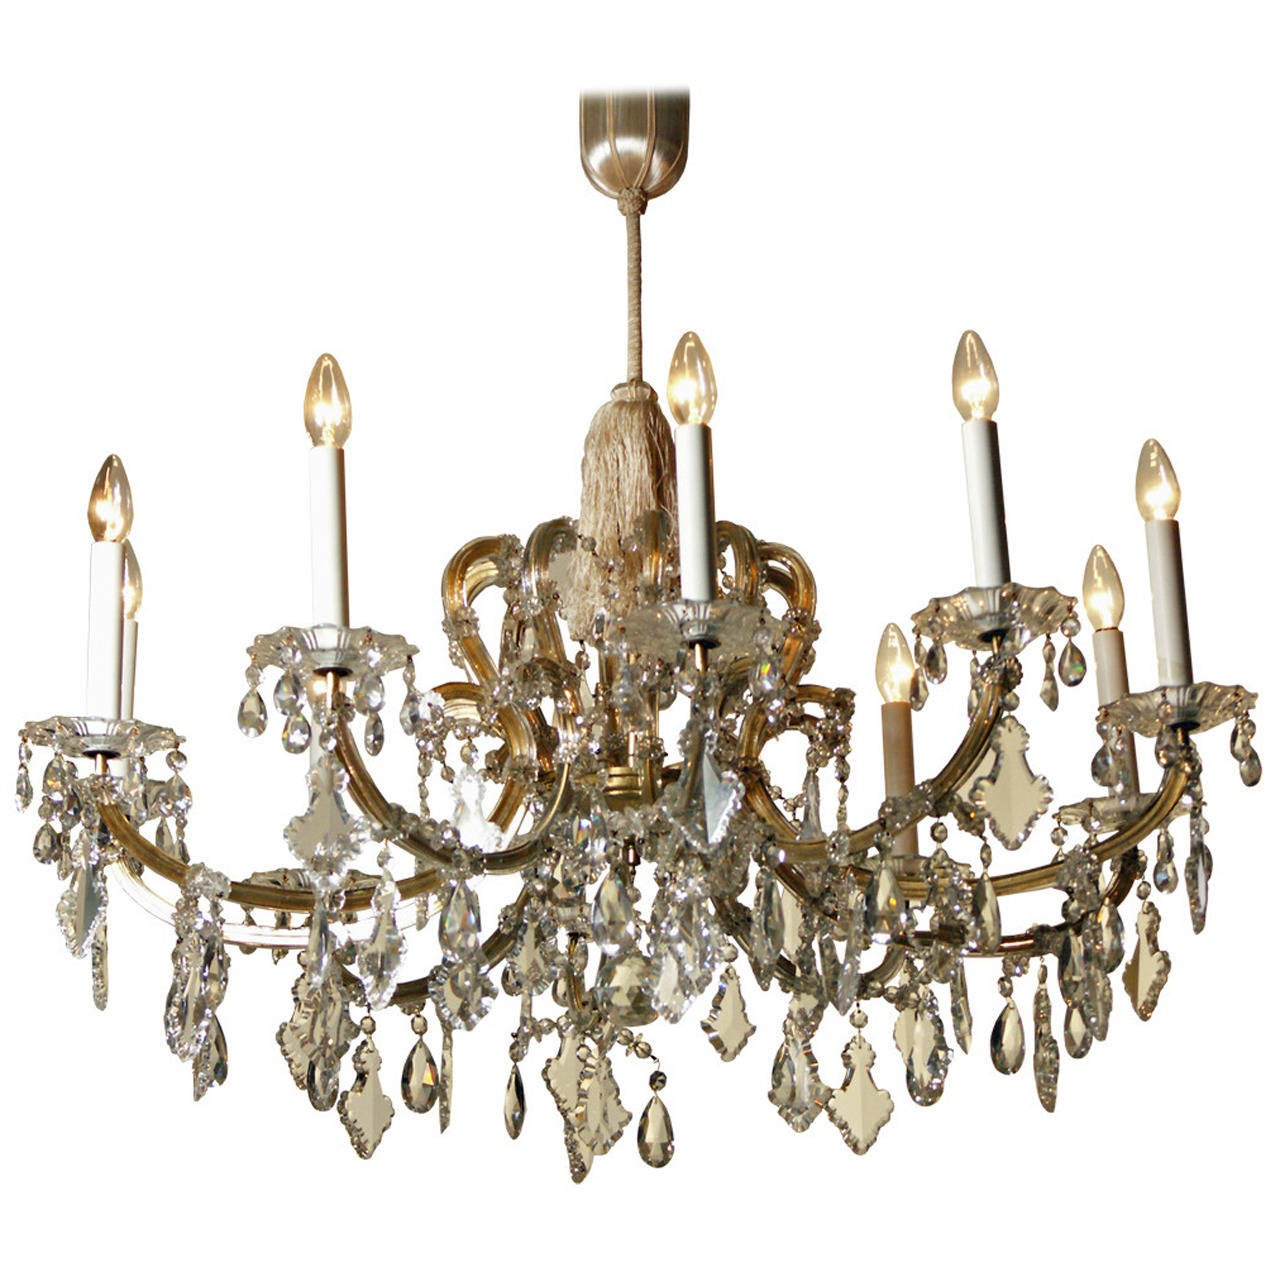 Lobmeyr viennese maria theresa chandelier for sale at 1stdibs lobmeyr viennese maria theresa chandelier for sale arubaitofo Gallery